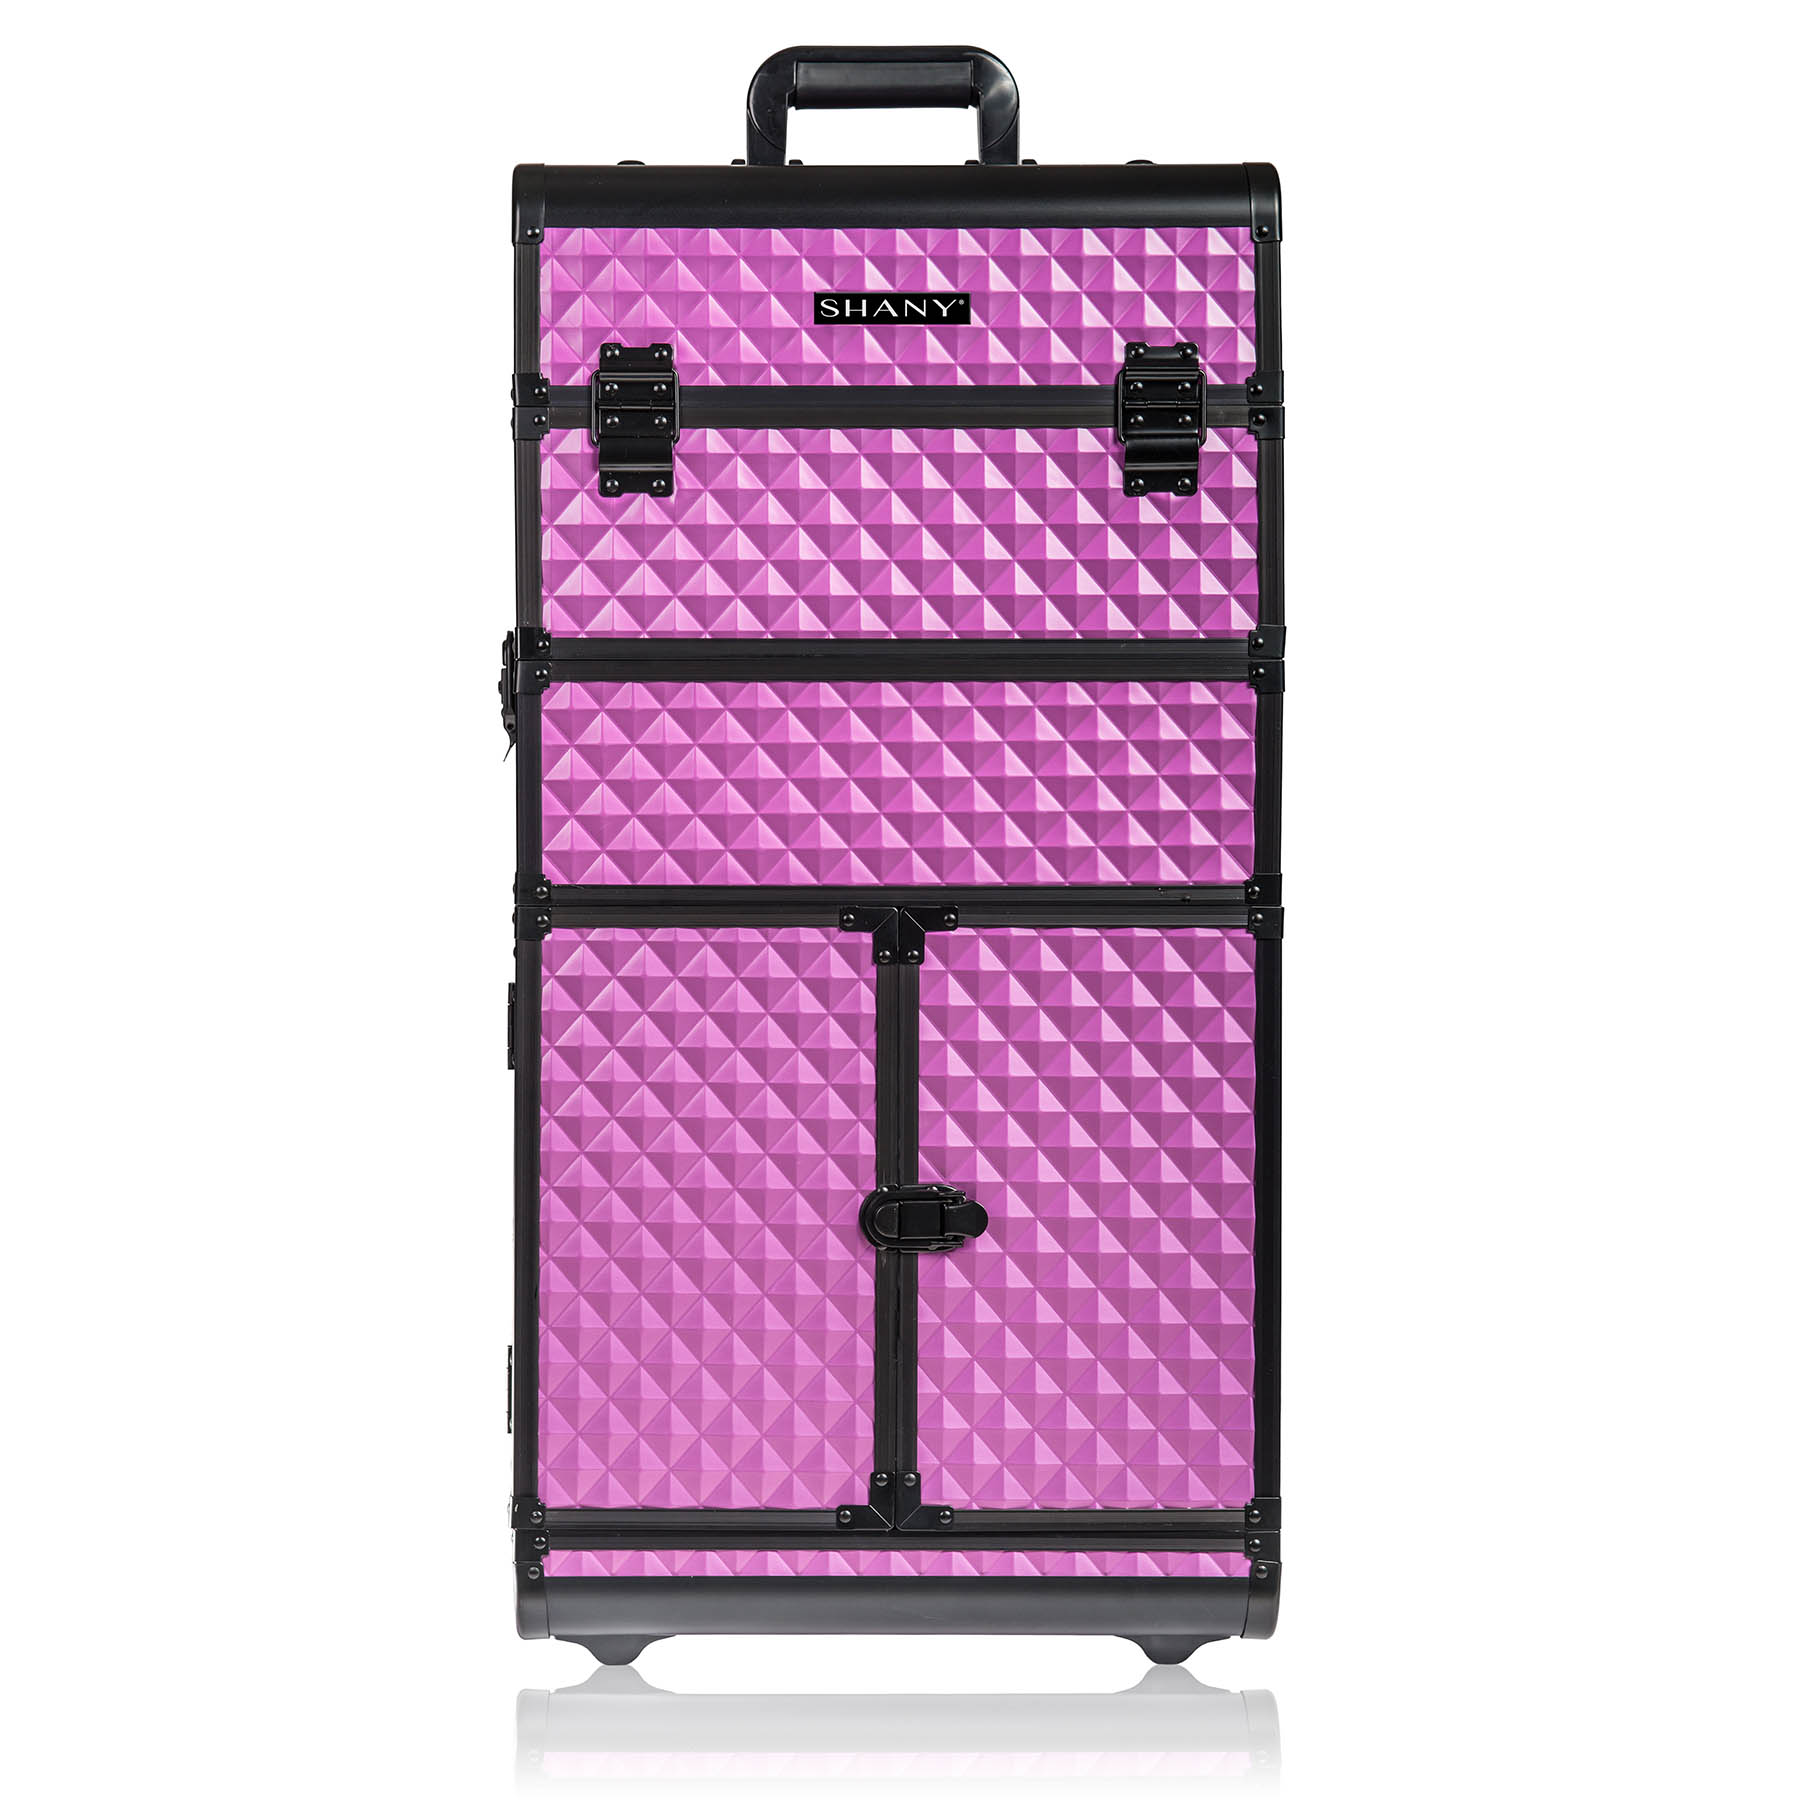 SHANY REBEL Series Pro Makeup Artists Rolling Train Case Tro